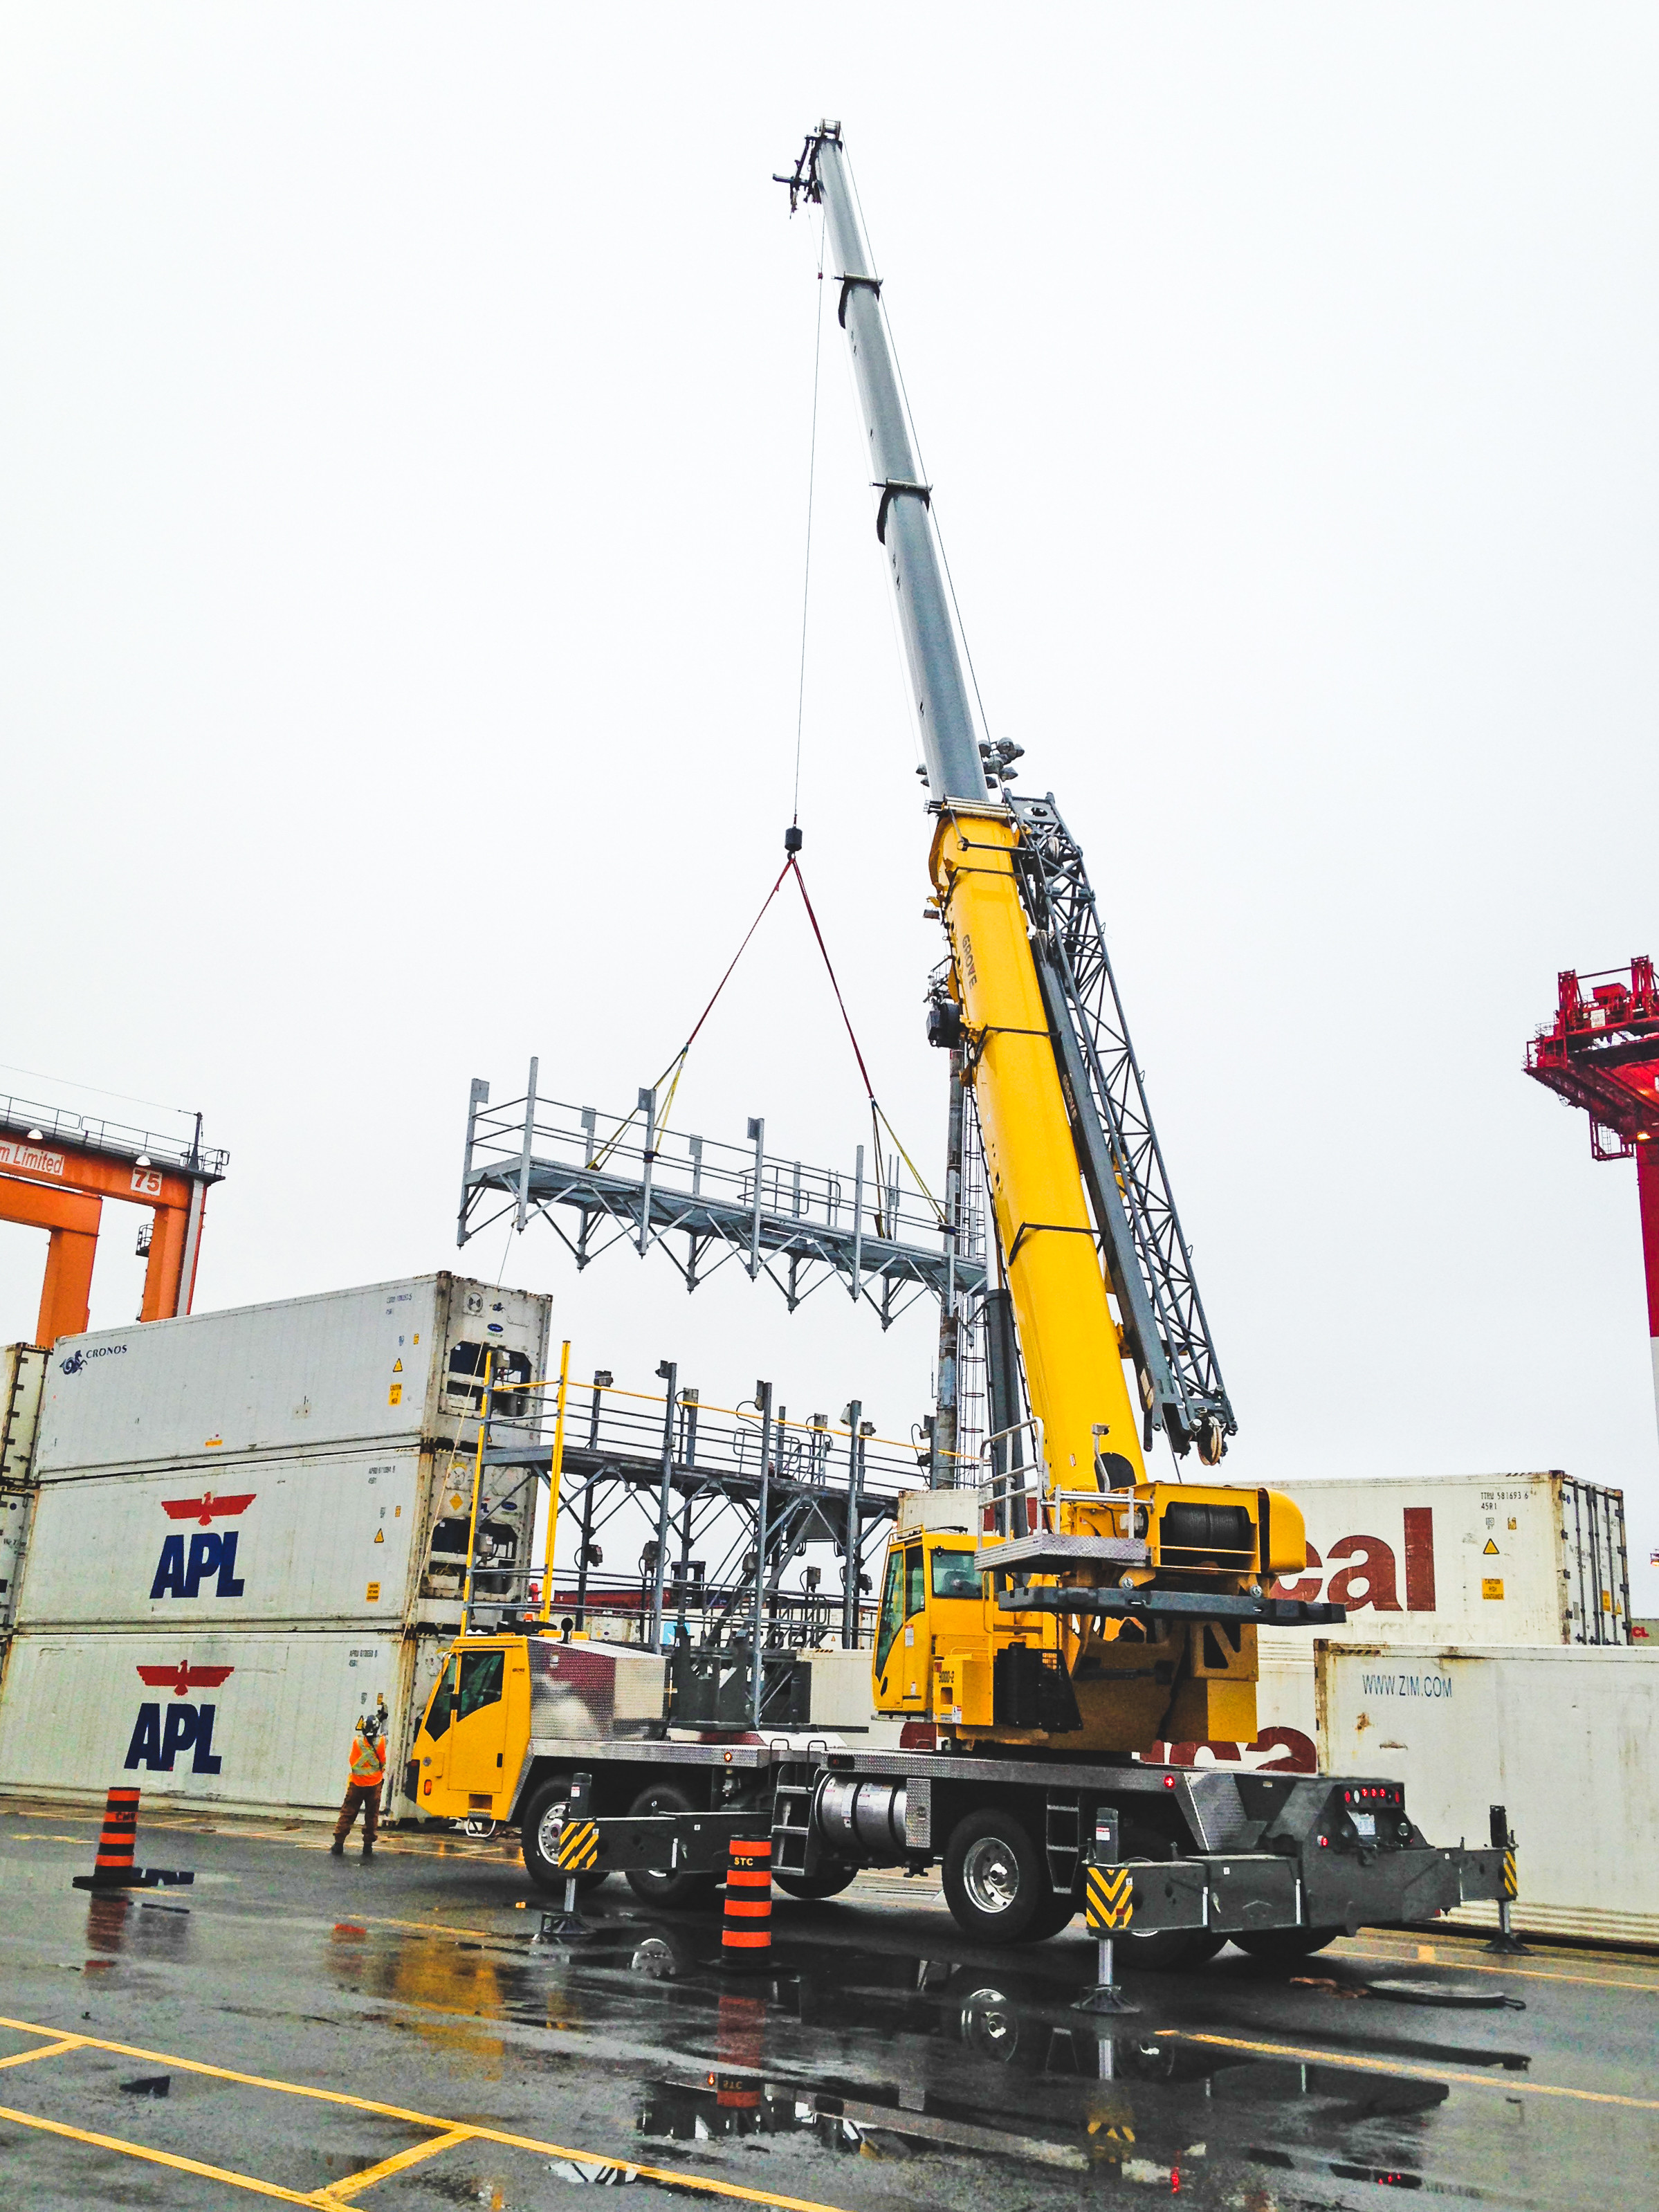 Better Crane Technology Leads to Project Cost Savings